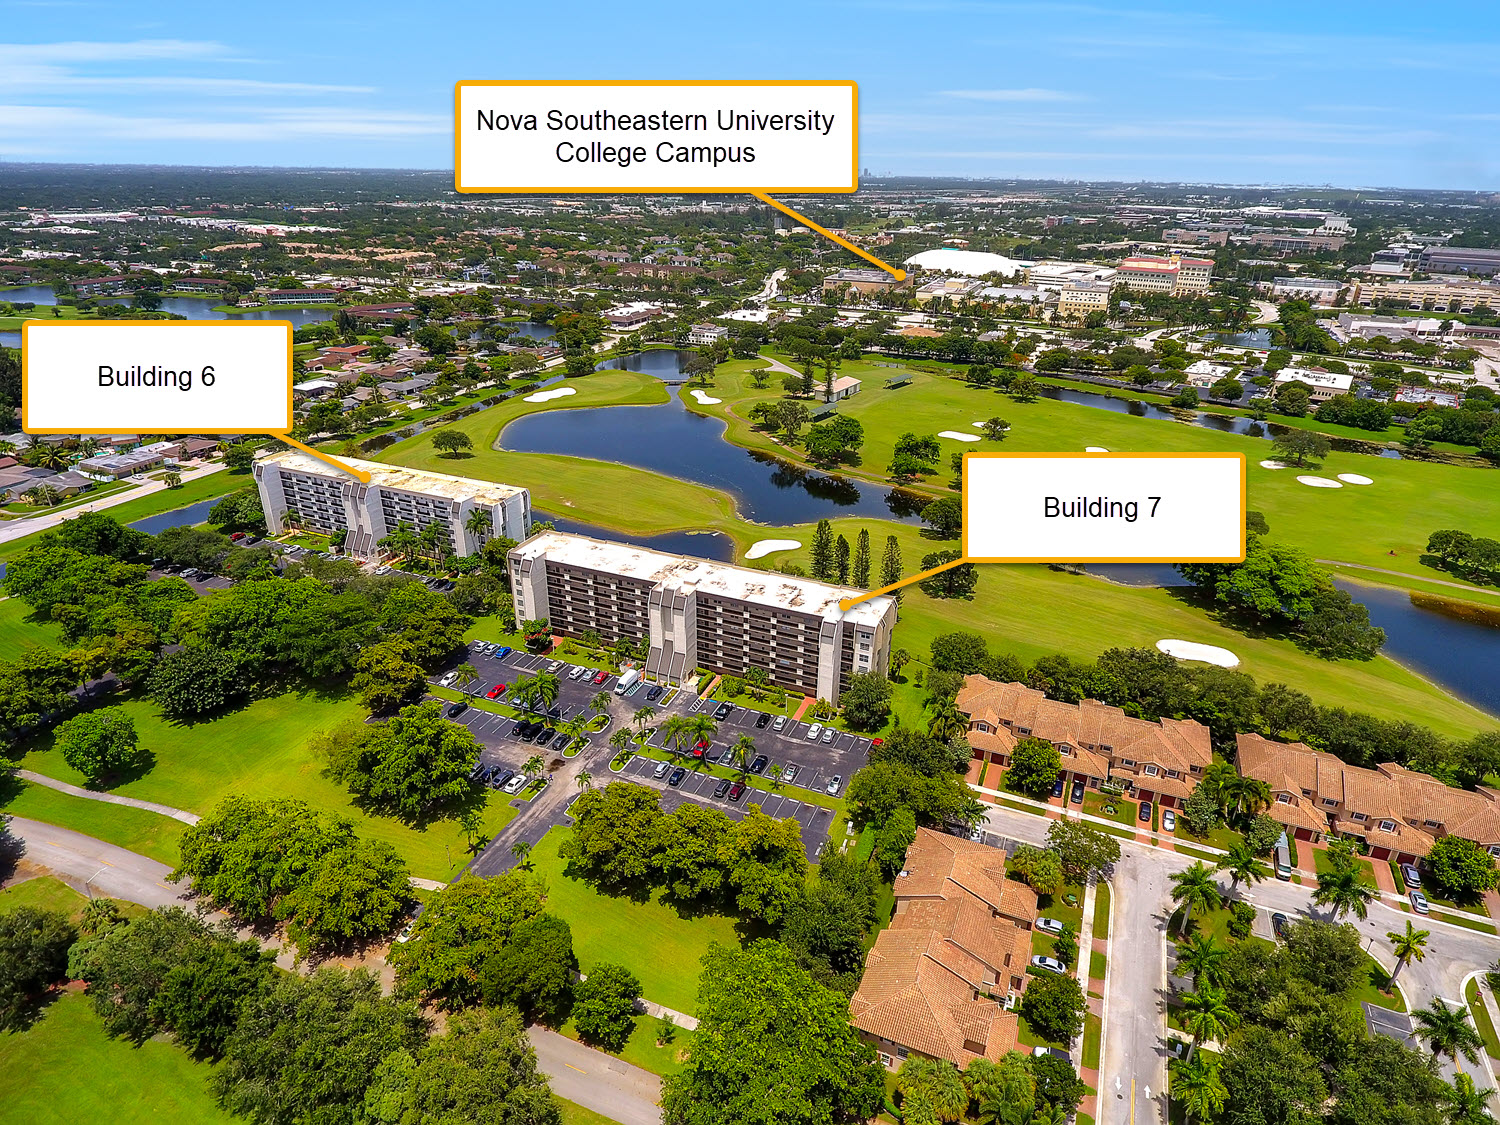 aerial with information showing buildings and nova southeastern university college campus in background near the rolling hills condominium community